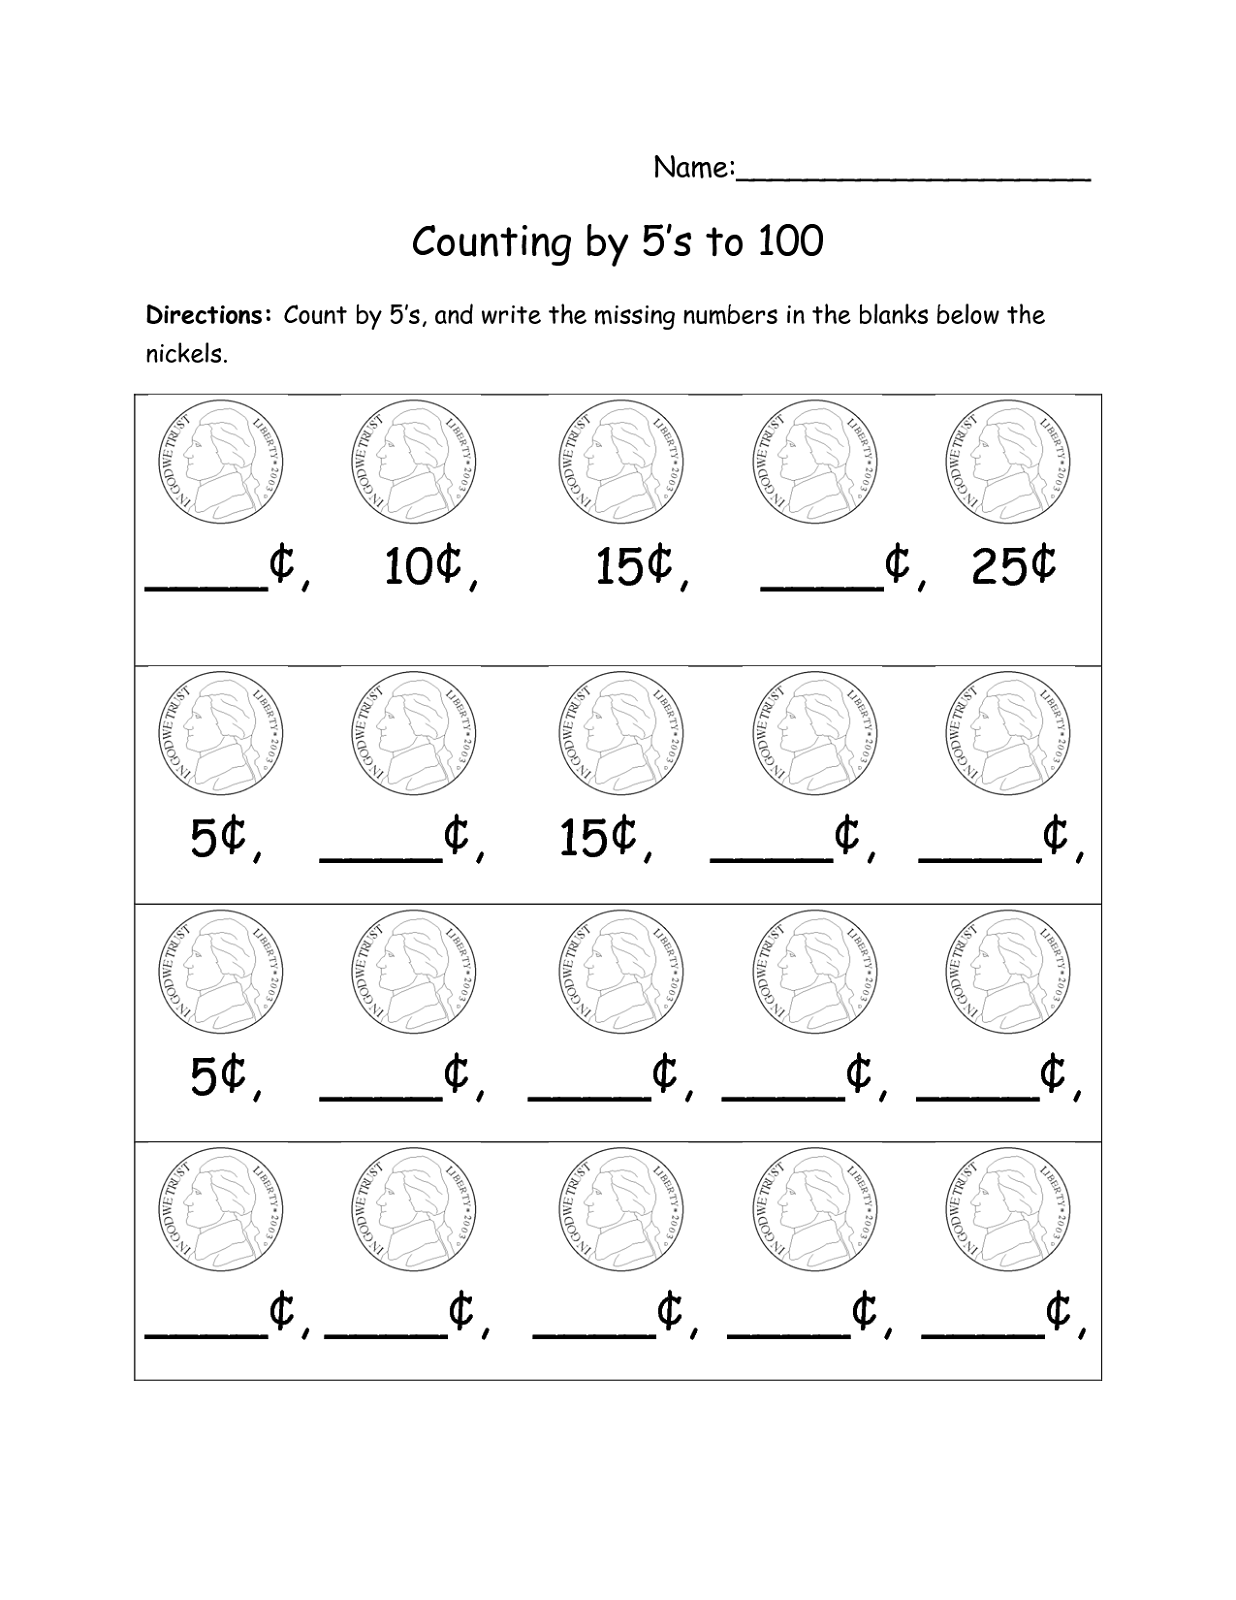 skip-count-by-5-worksheet-coin